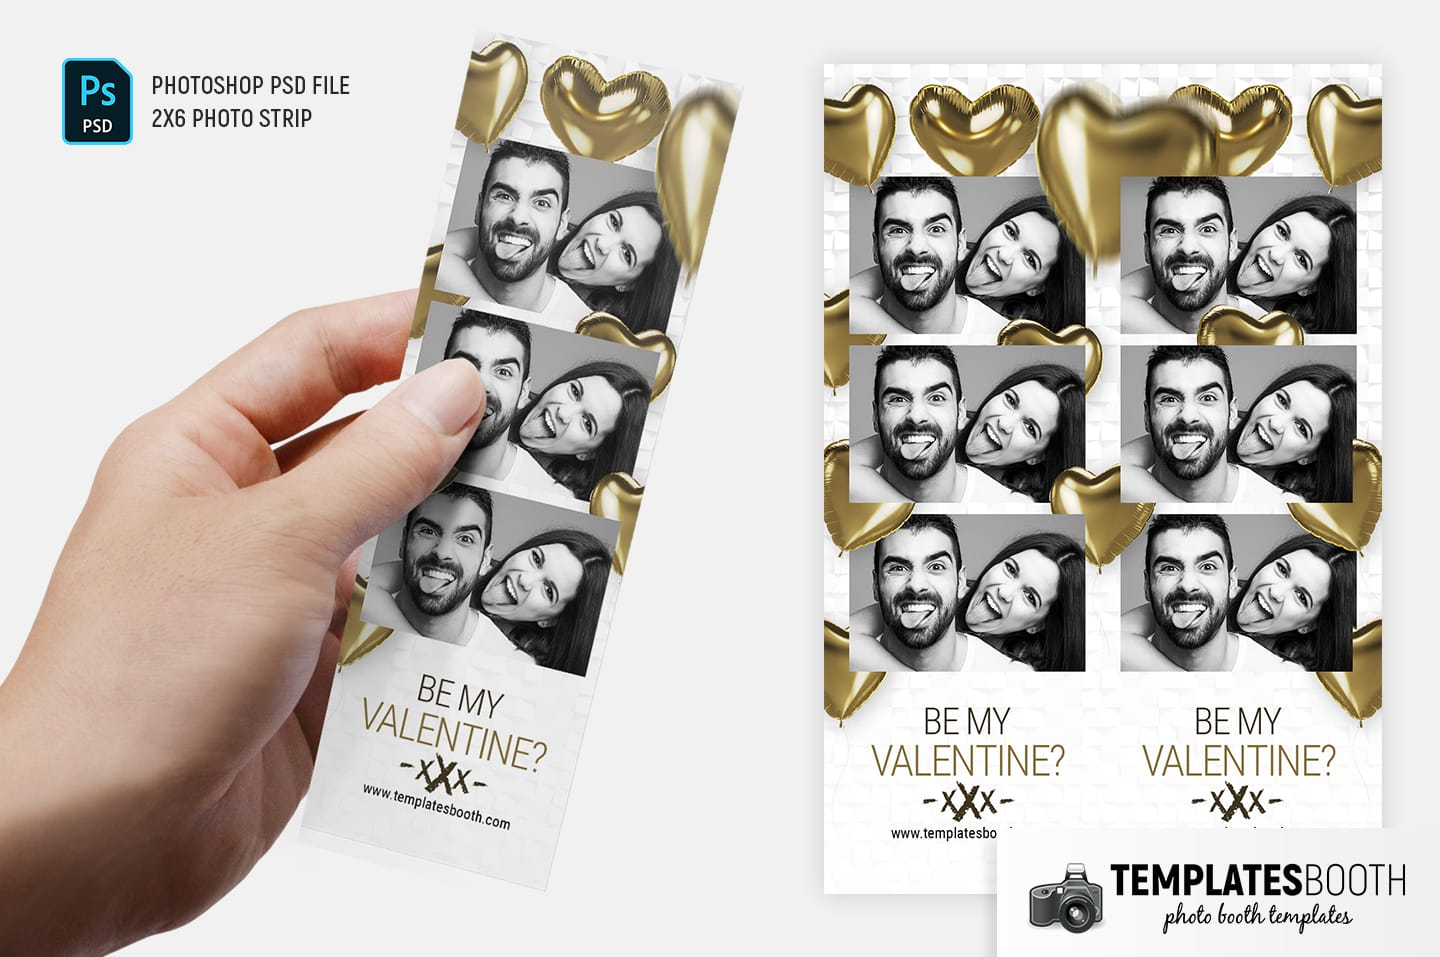 Be My Valentine Photo Booth Template (2x6 photo strip)